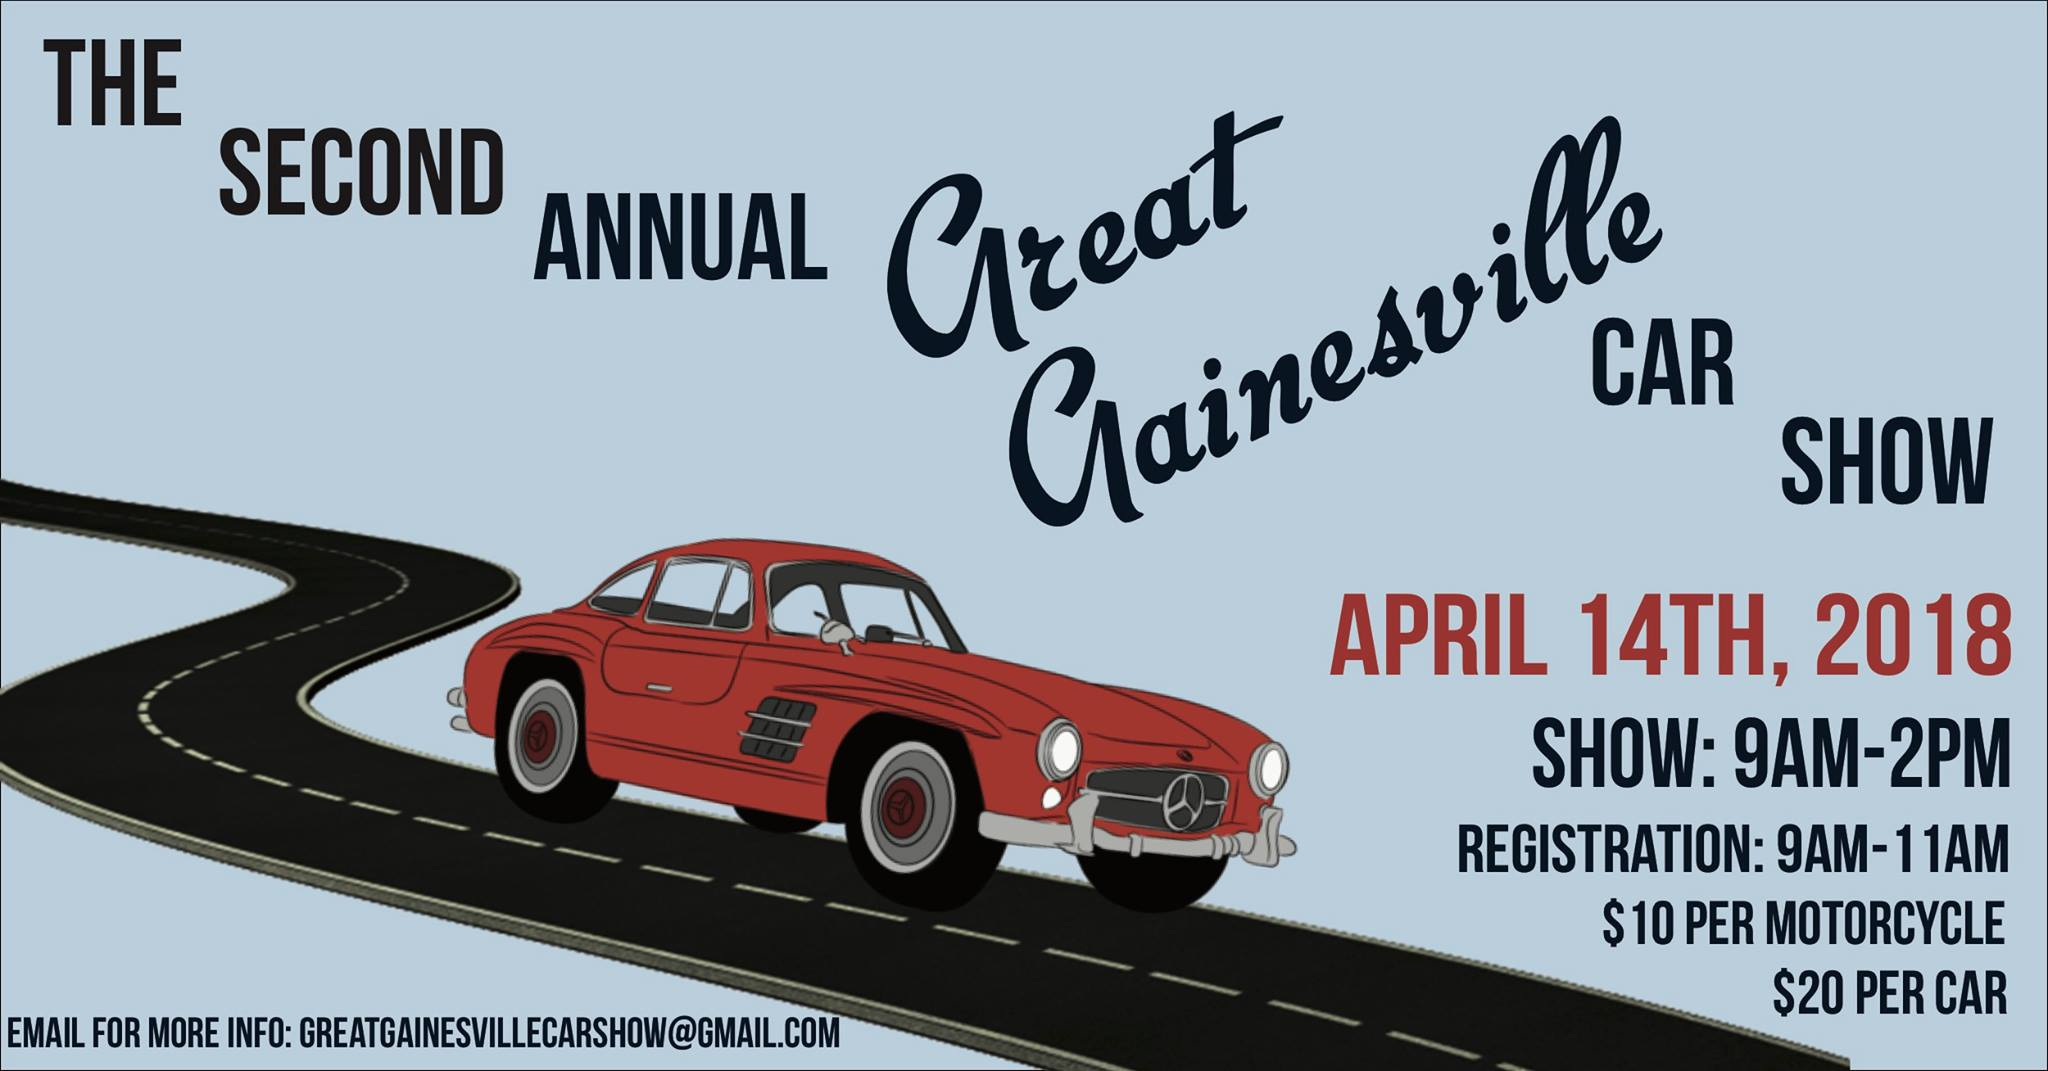 The Second Annual Great Gainesville Car Show